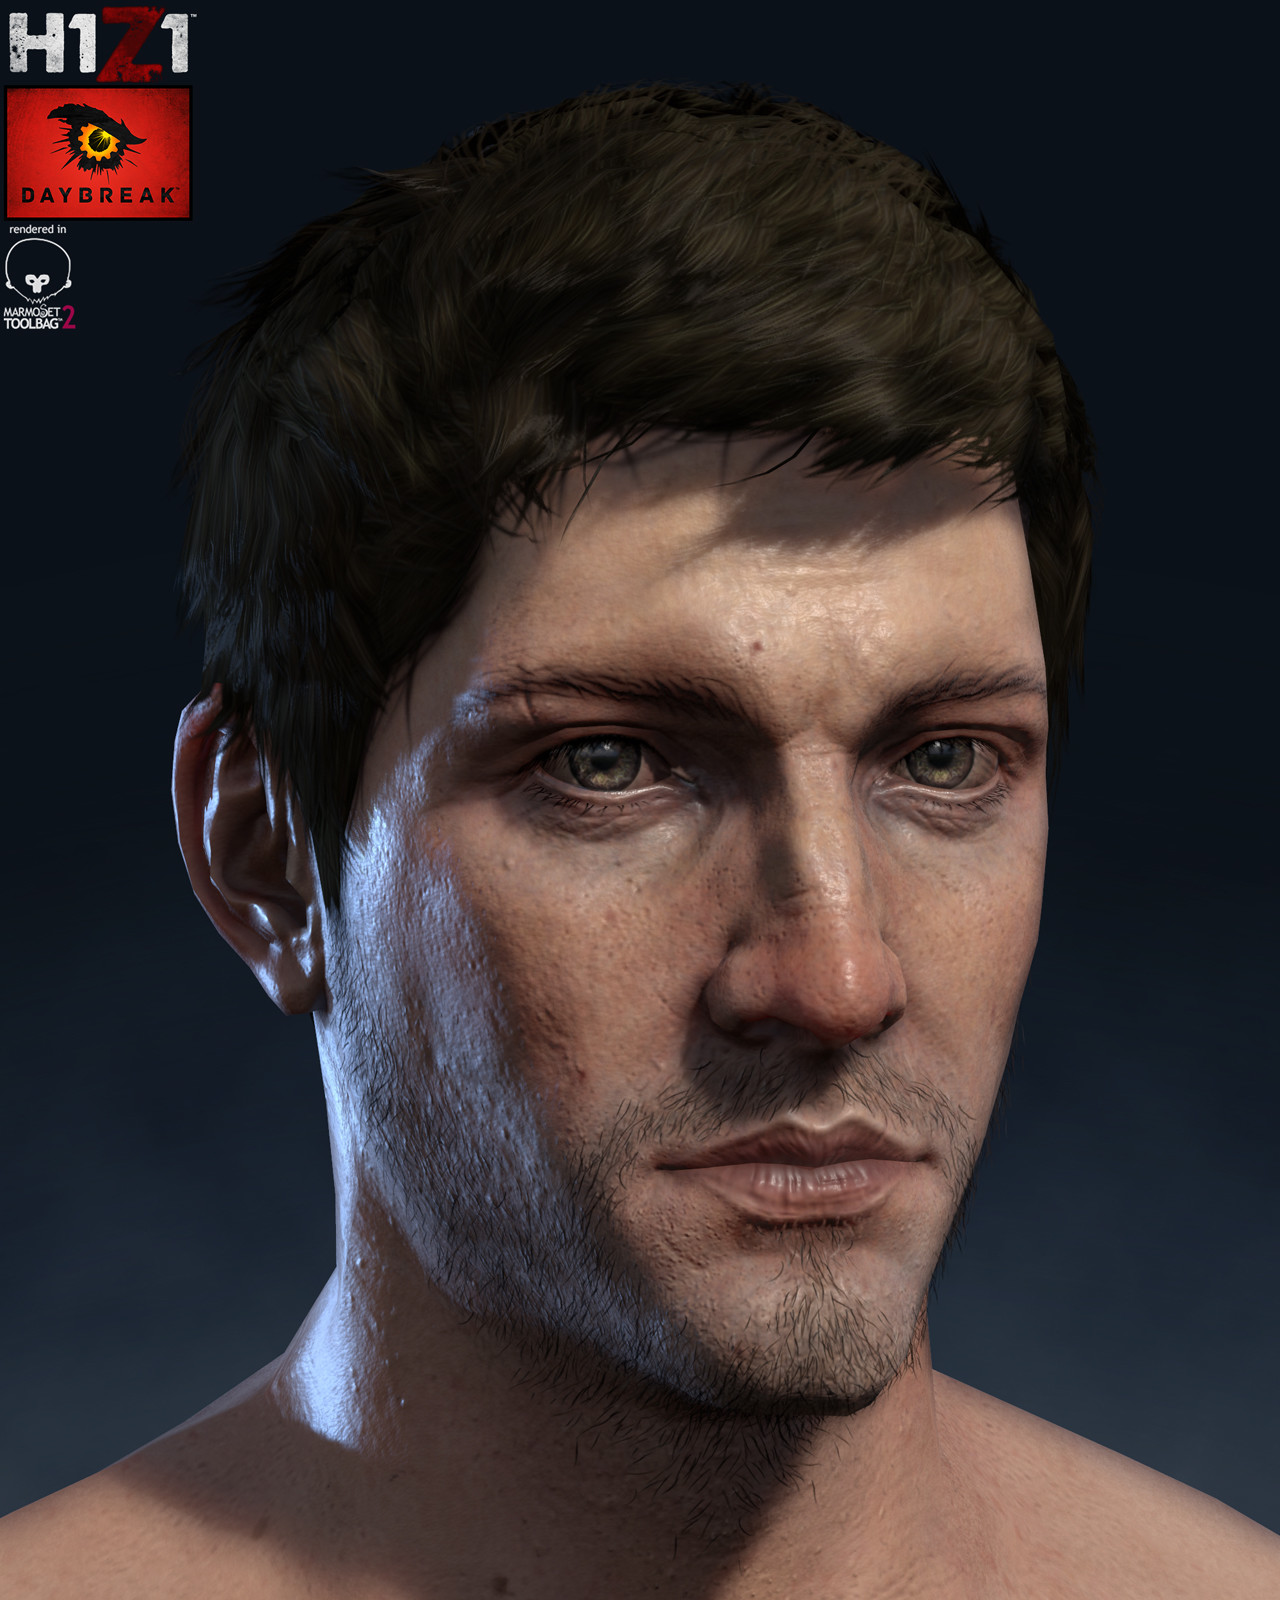 H1Z1 Human Male Head Render WIP